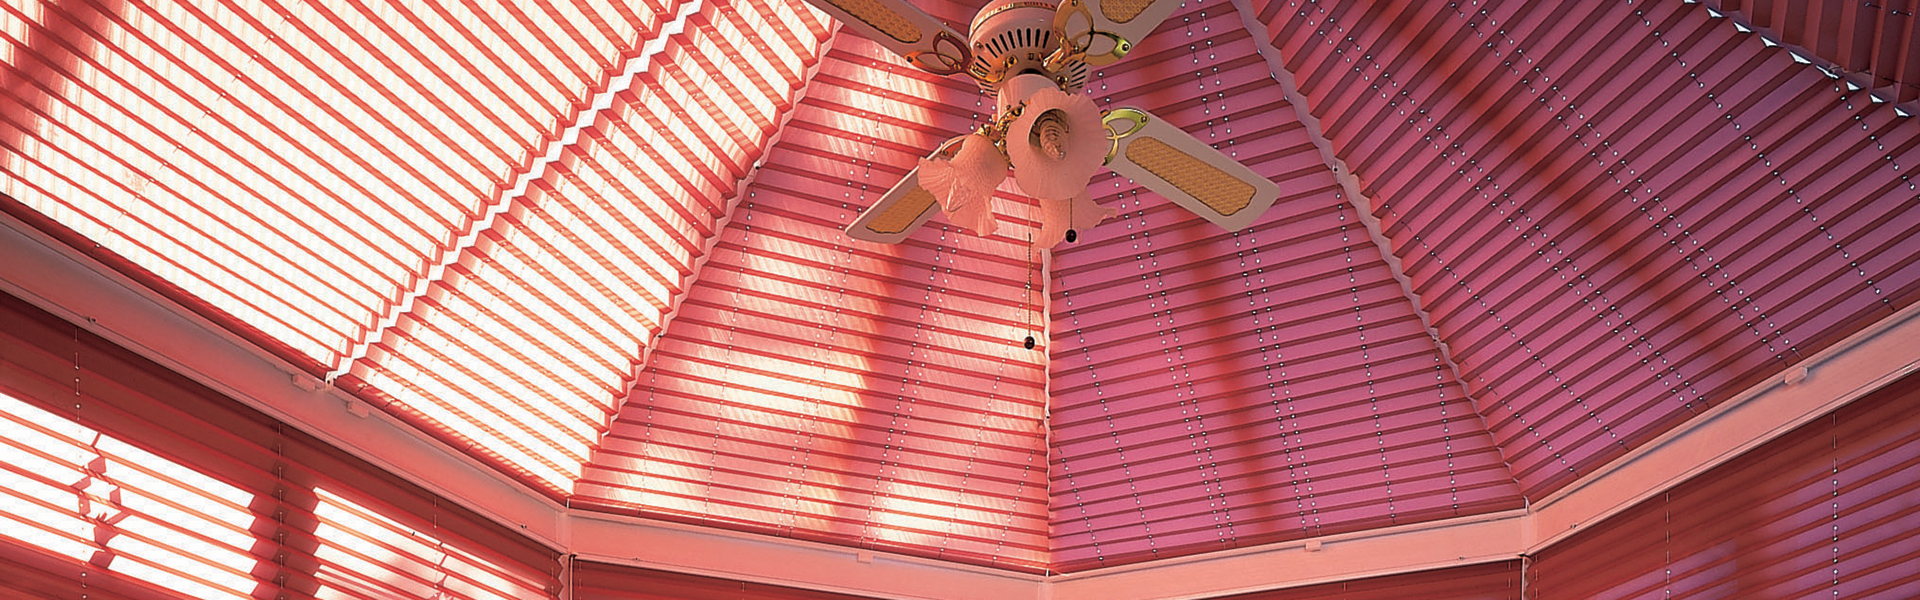 conservatory-roof-blinds-hero-4